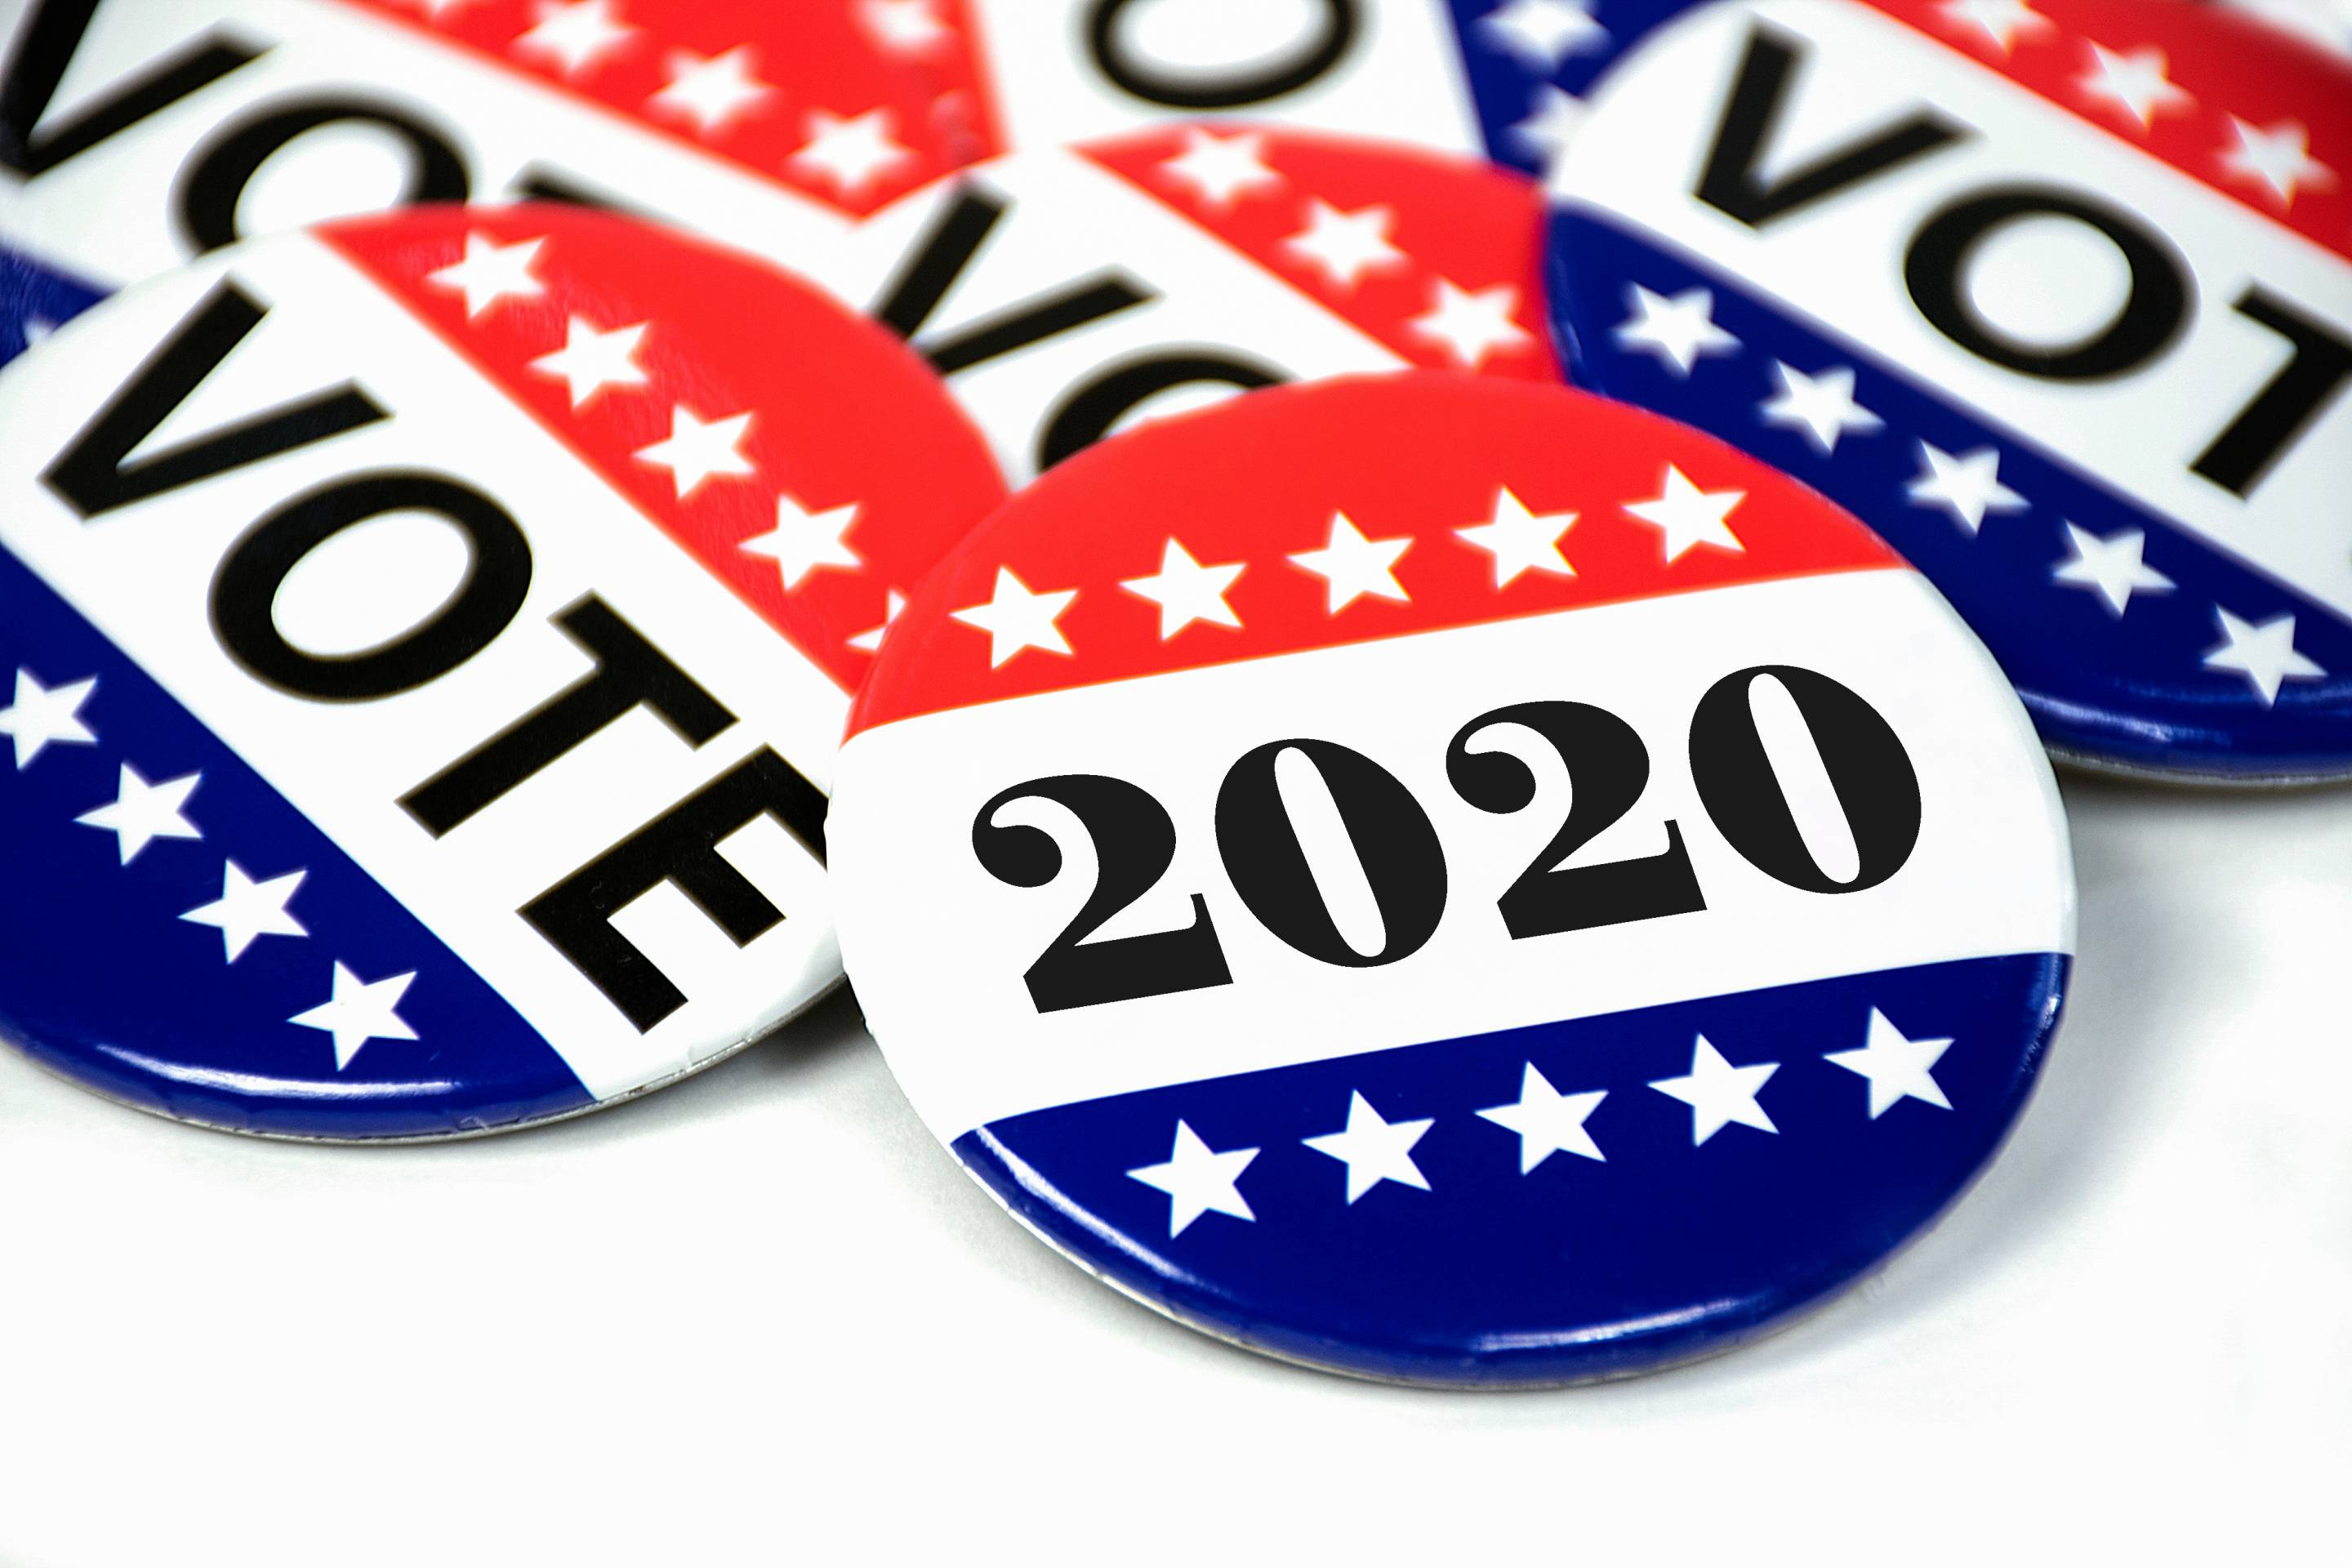 2020 Election: Meet the Republicans Likely to Challenge